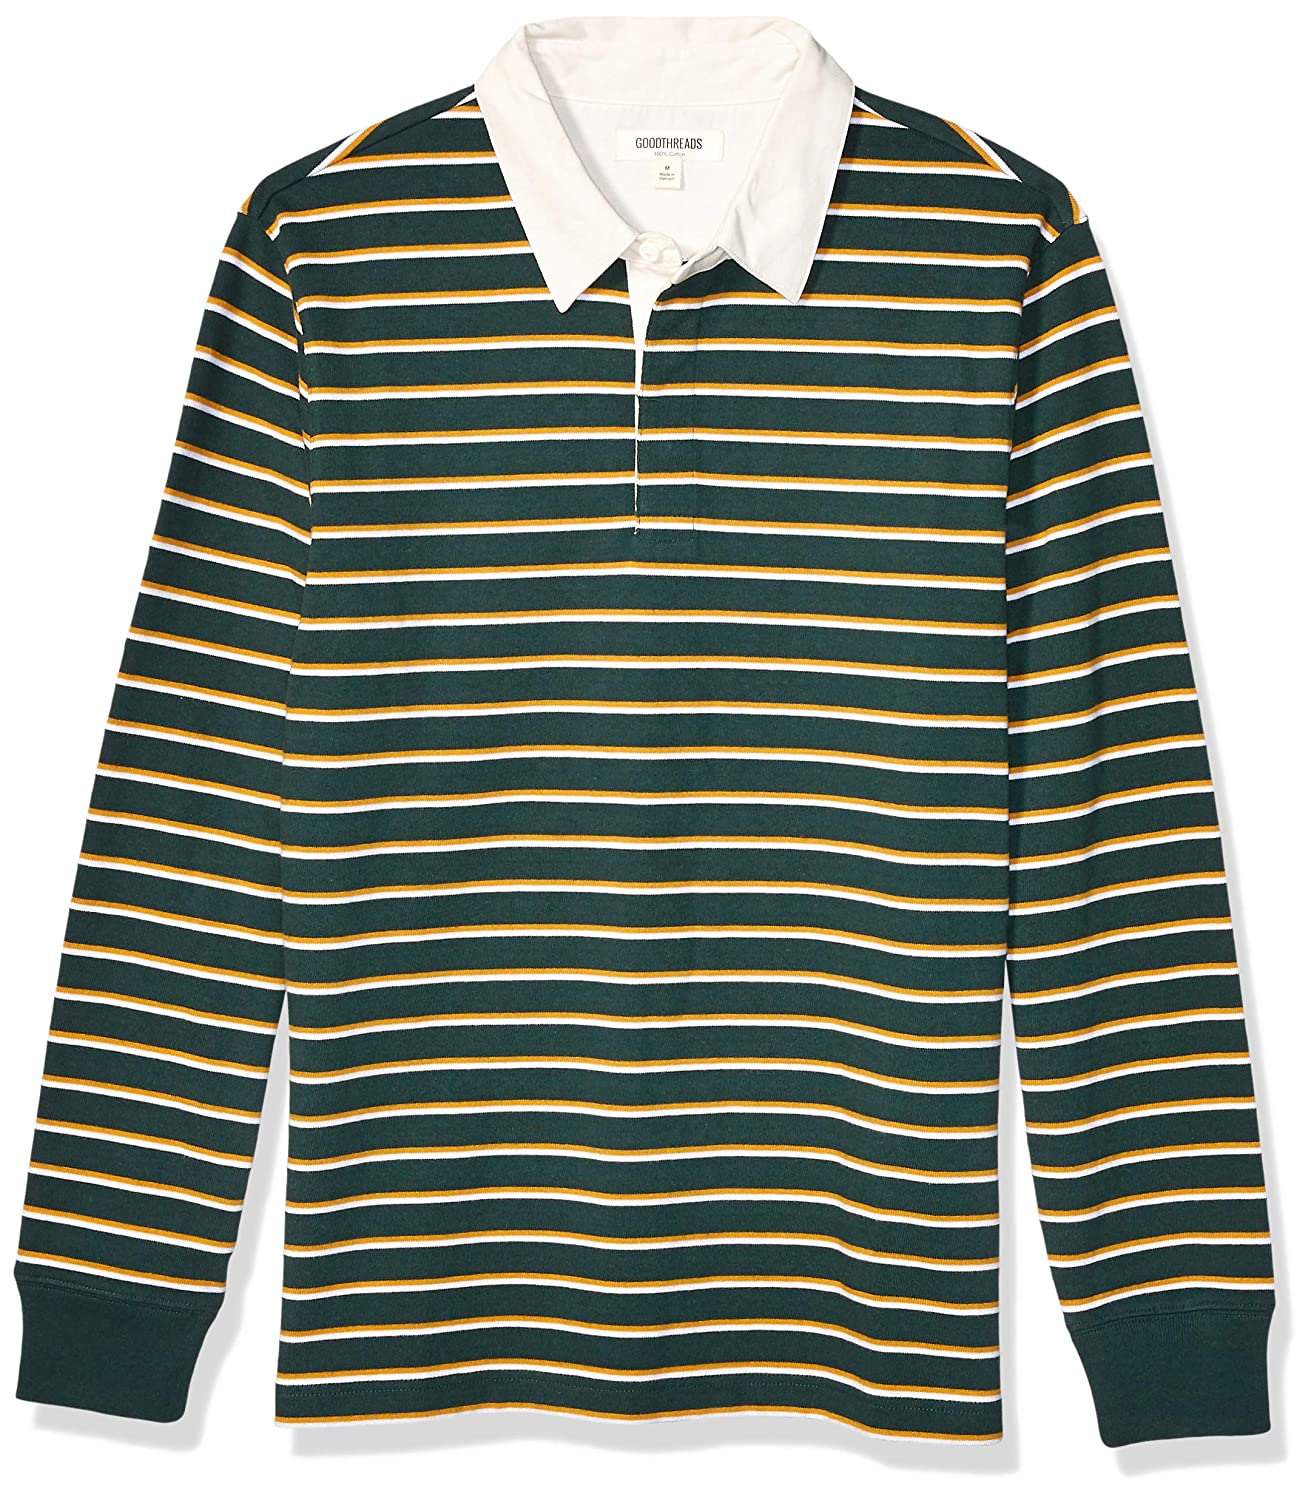 Goodthreads Long-Sleeve Striped Rugby Polo-Shirts, Pine Green Gold ...